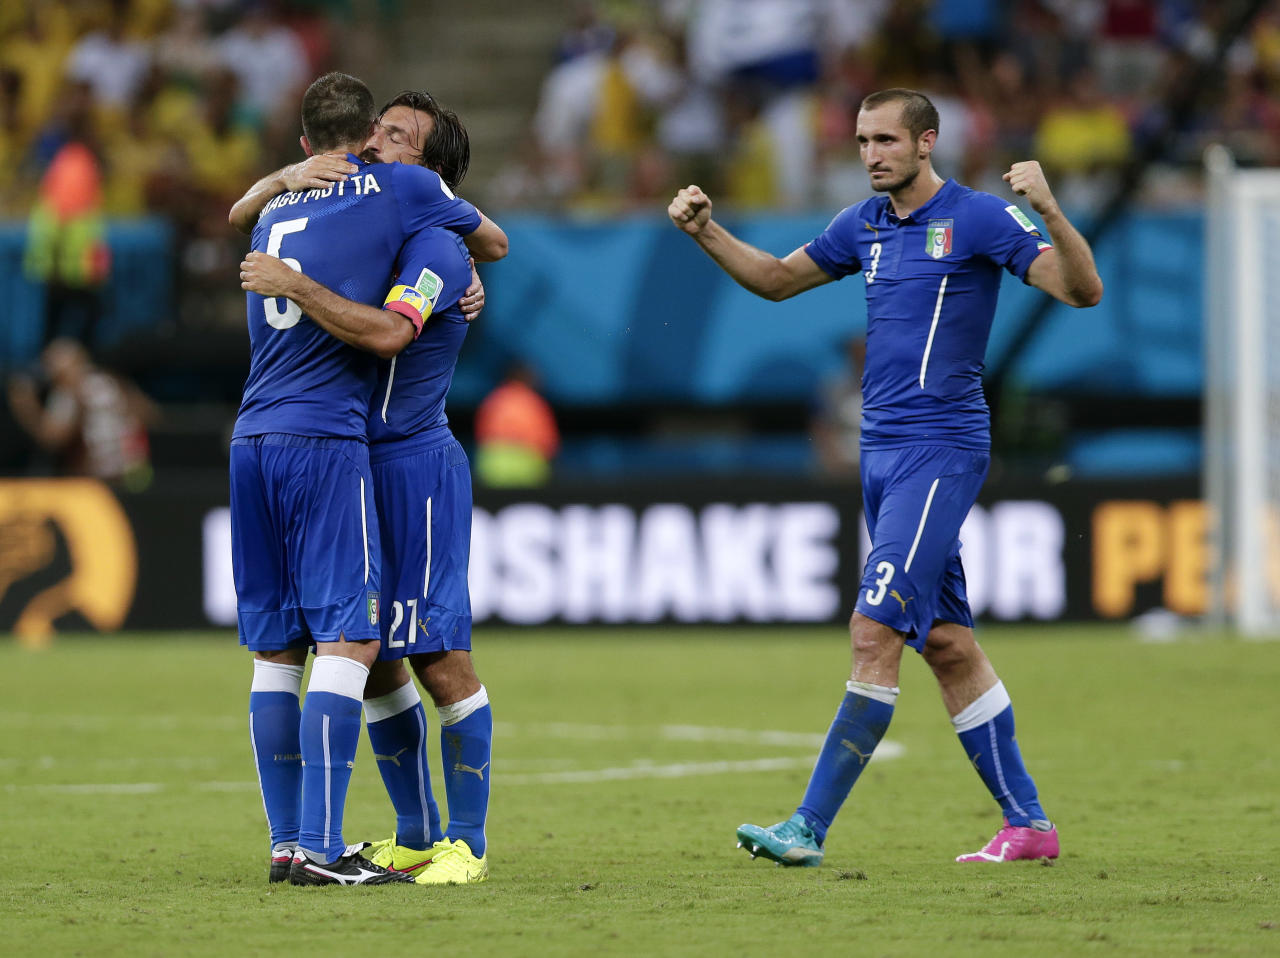 Italy's Thiago Motta (5) hugs Andrea Pirlo (21) as Giorgio Chiellini (3) joins them after defeating England 2-1 in their group D World Cup soccer match at the Arena da Amazonia in Manaus, Brazil, Saturday, June 14, 2014. (AP Photo/Marcio Jose Sanchez)